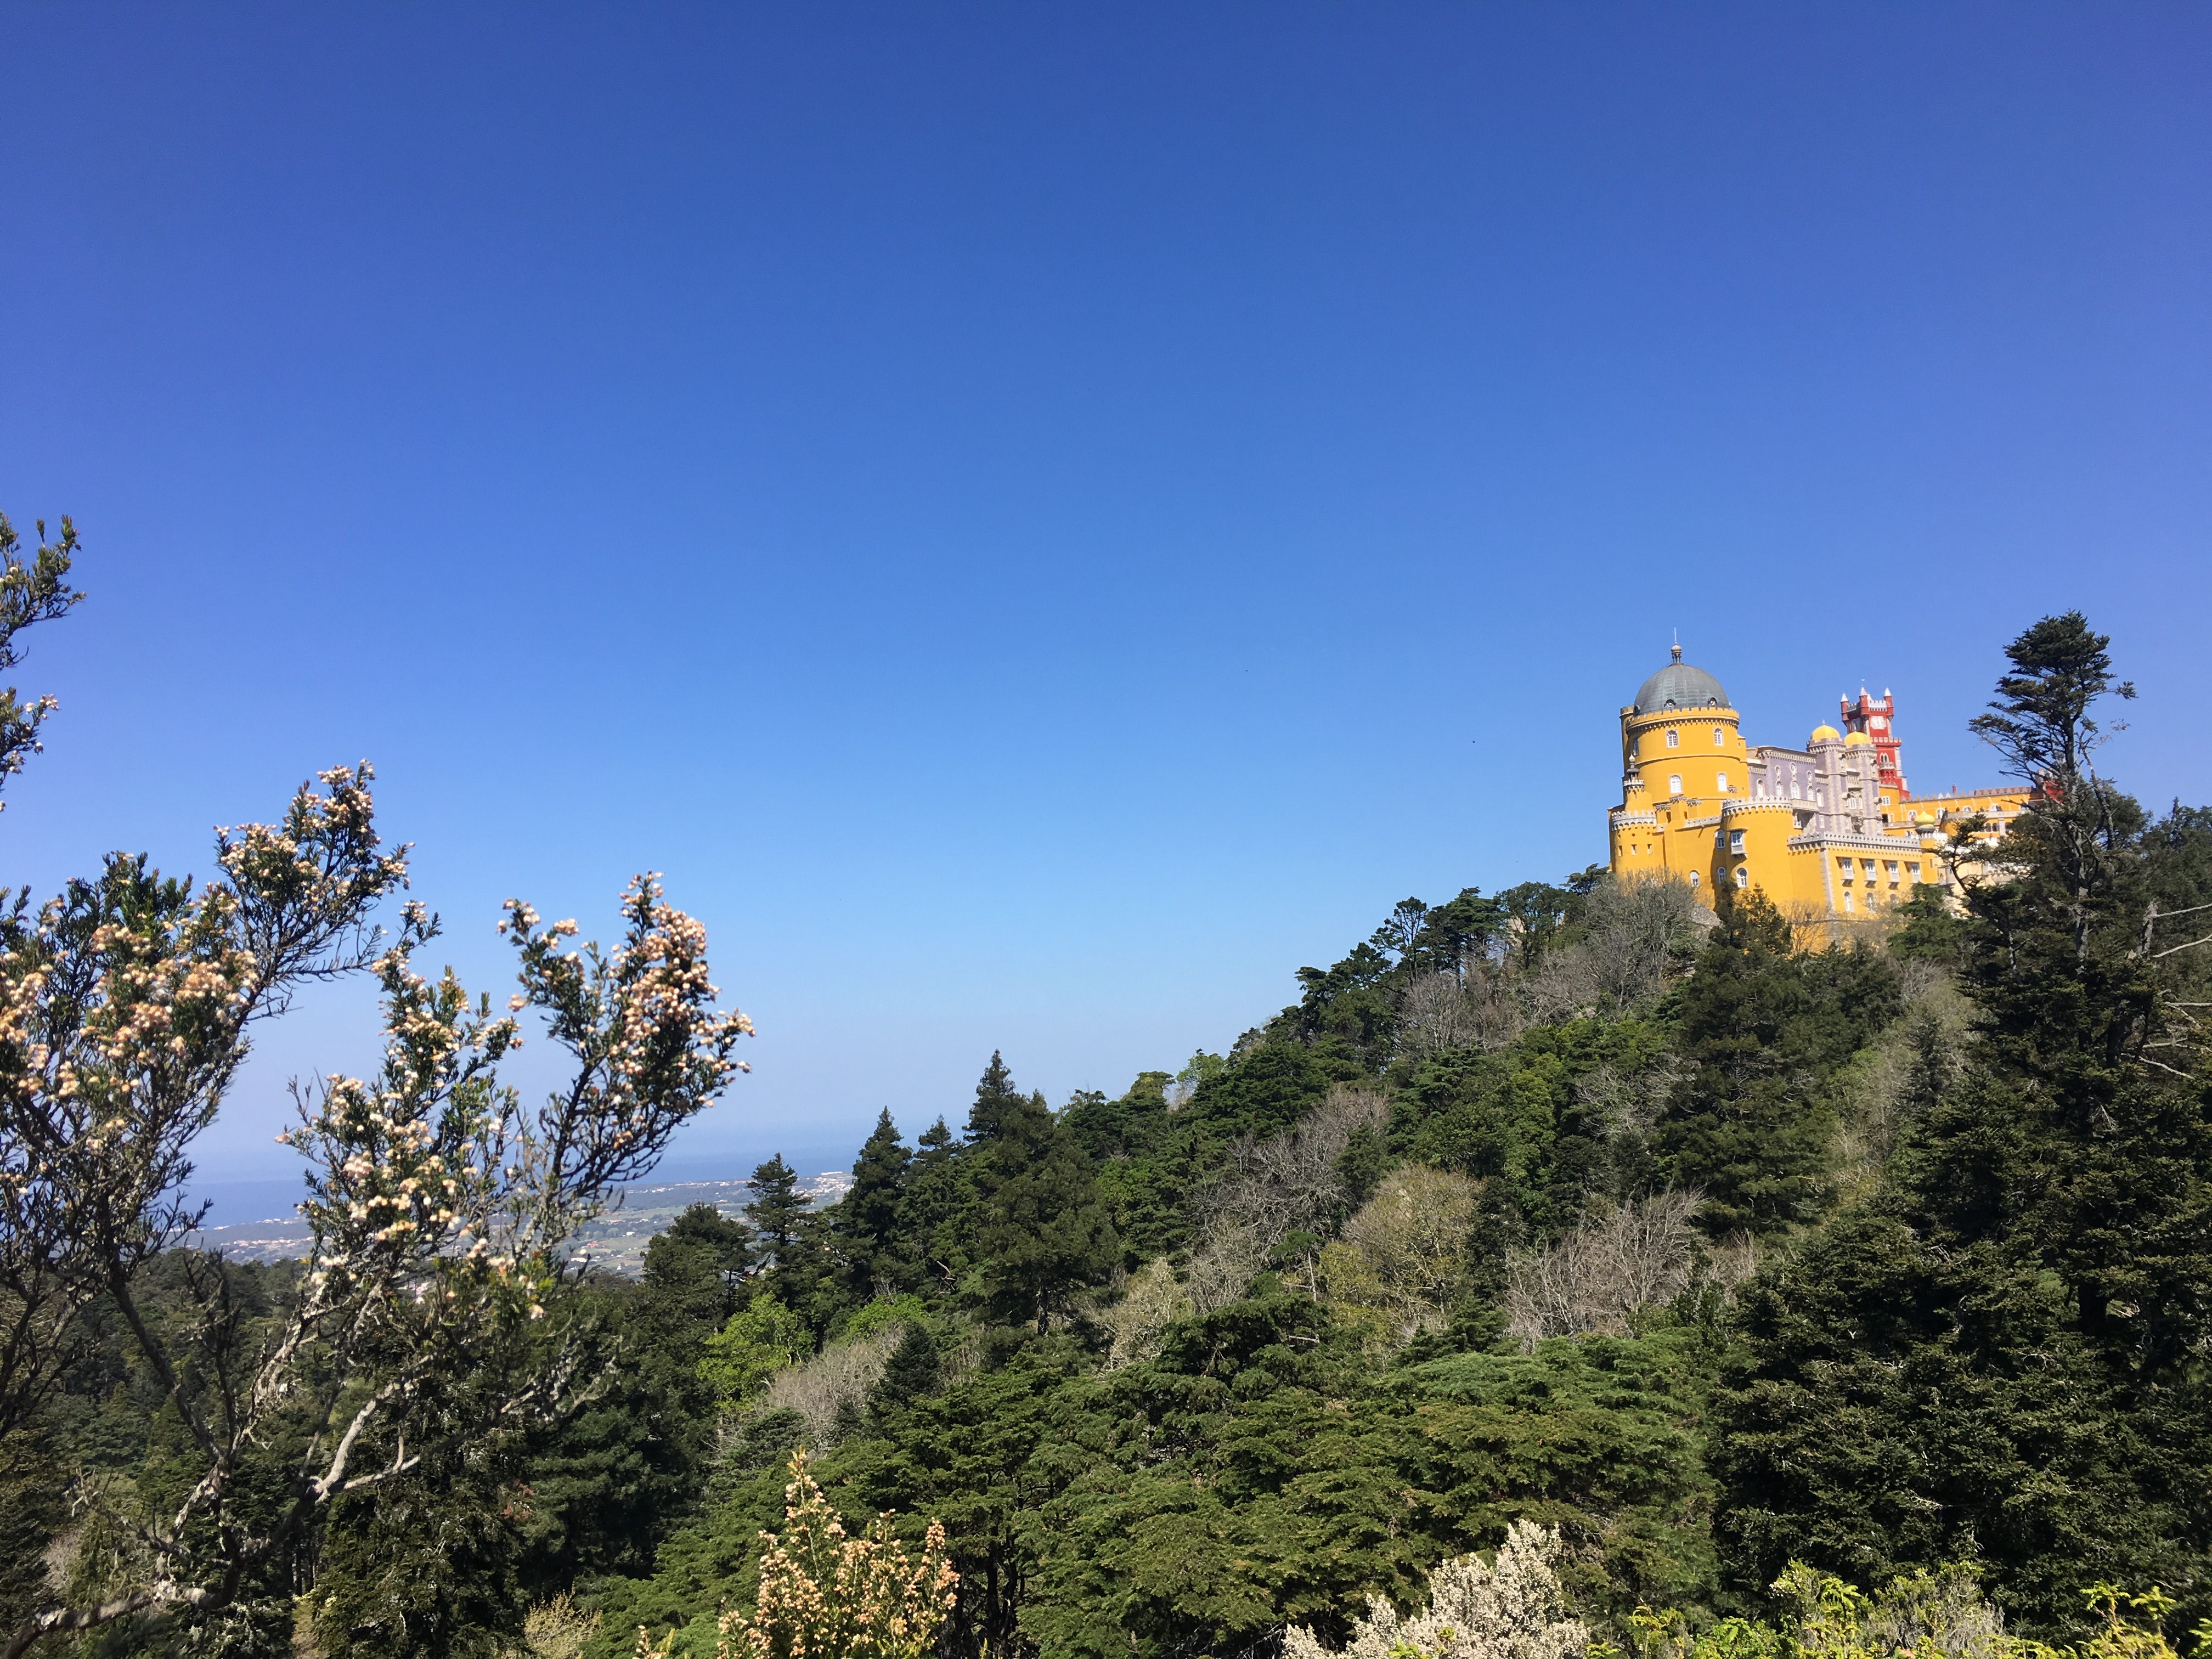 A view of the Pena palace on a wooded hillside